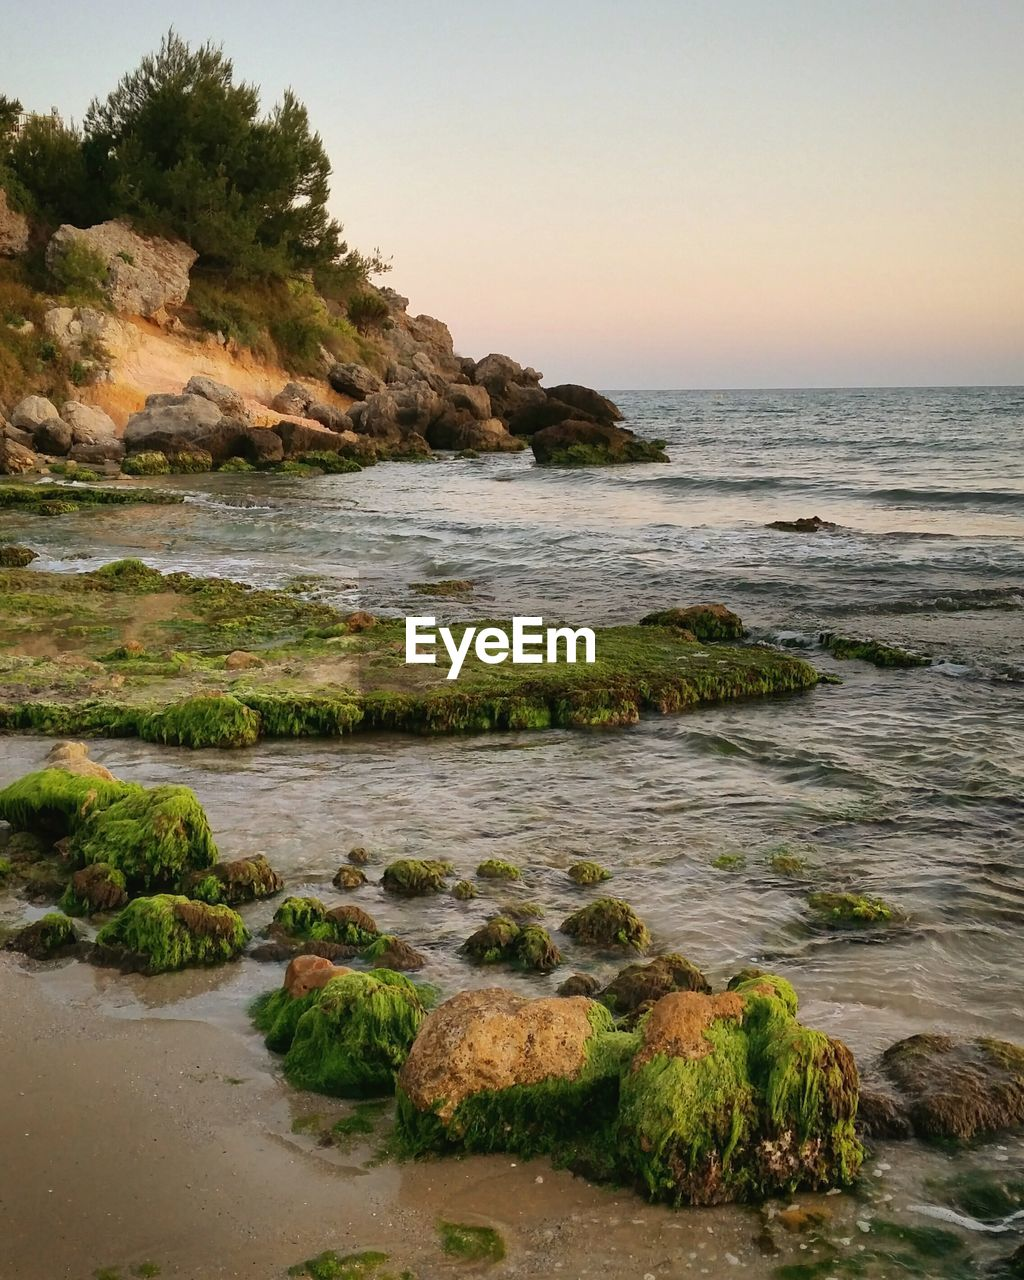 sea, rock - object, nature, beauty in nature, water, scenics, no people, horizon over water, rock, tranquility, tranquil scene, beach, outdoors, sky, sunset, clear sky, day, scenery